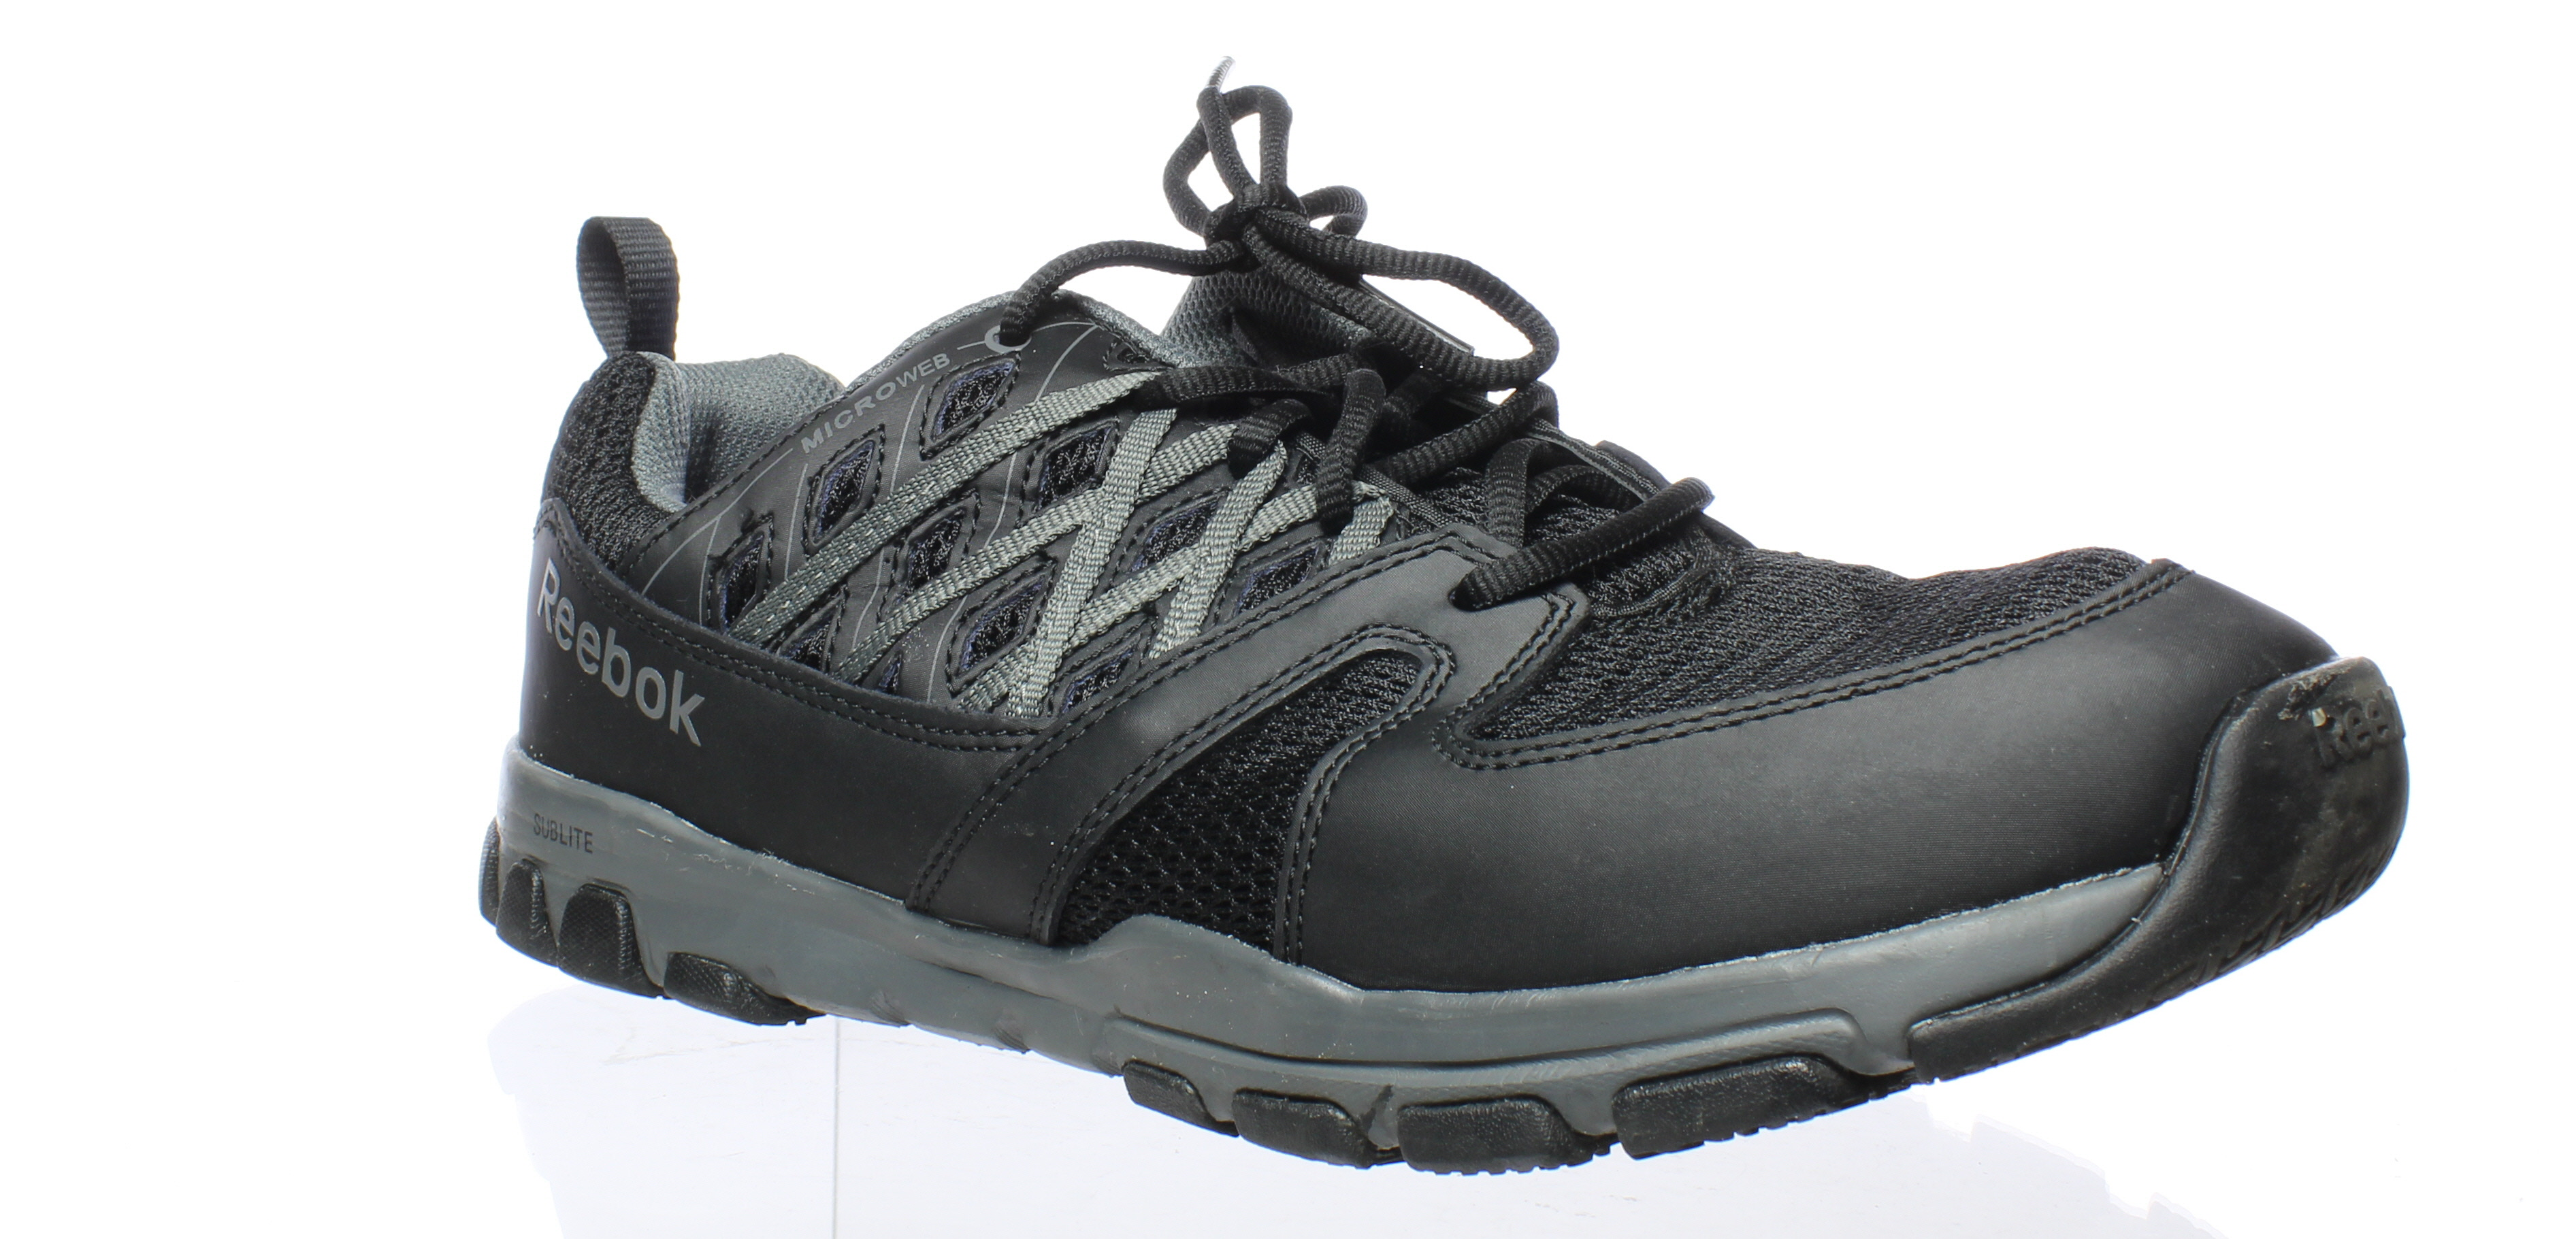 252e884ff3f Reebok Mens Sublite Work Rb4015-M Black Safety Shoes Size 11 (E